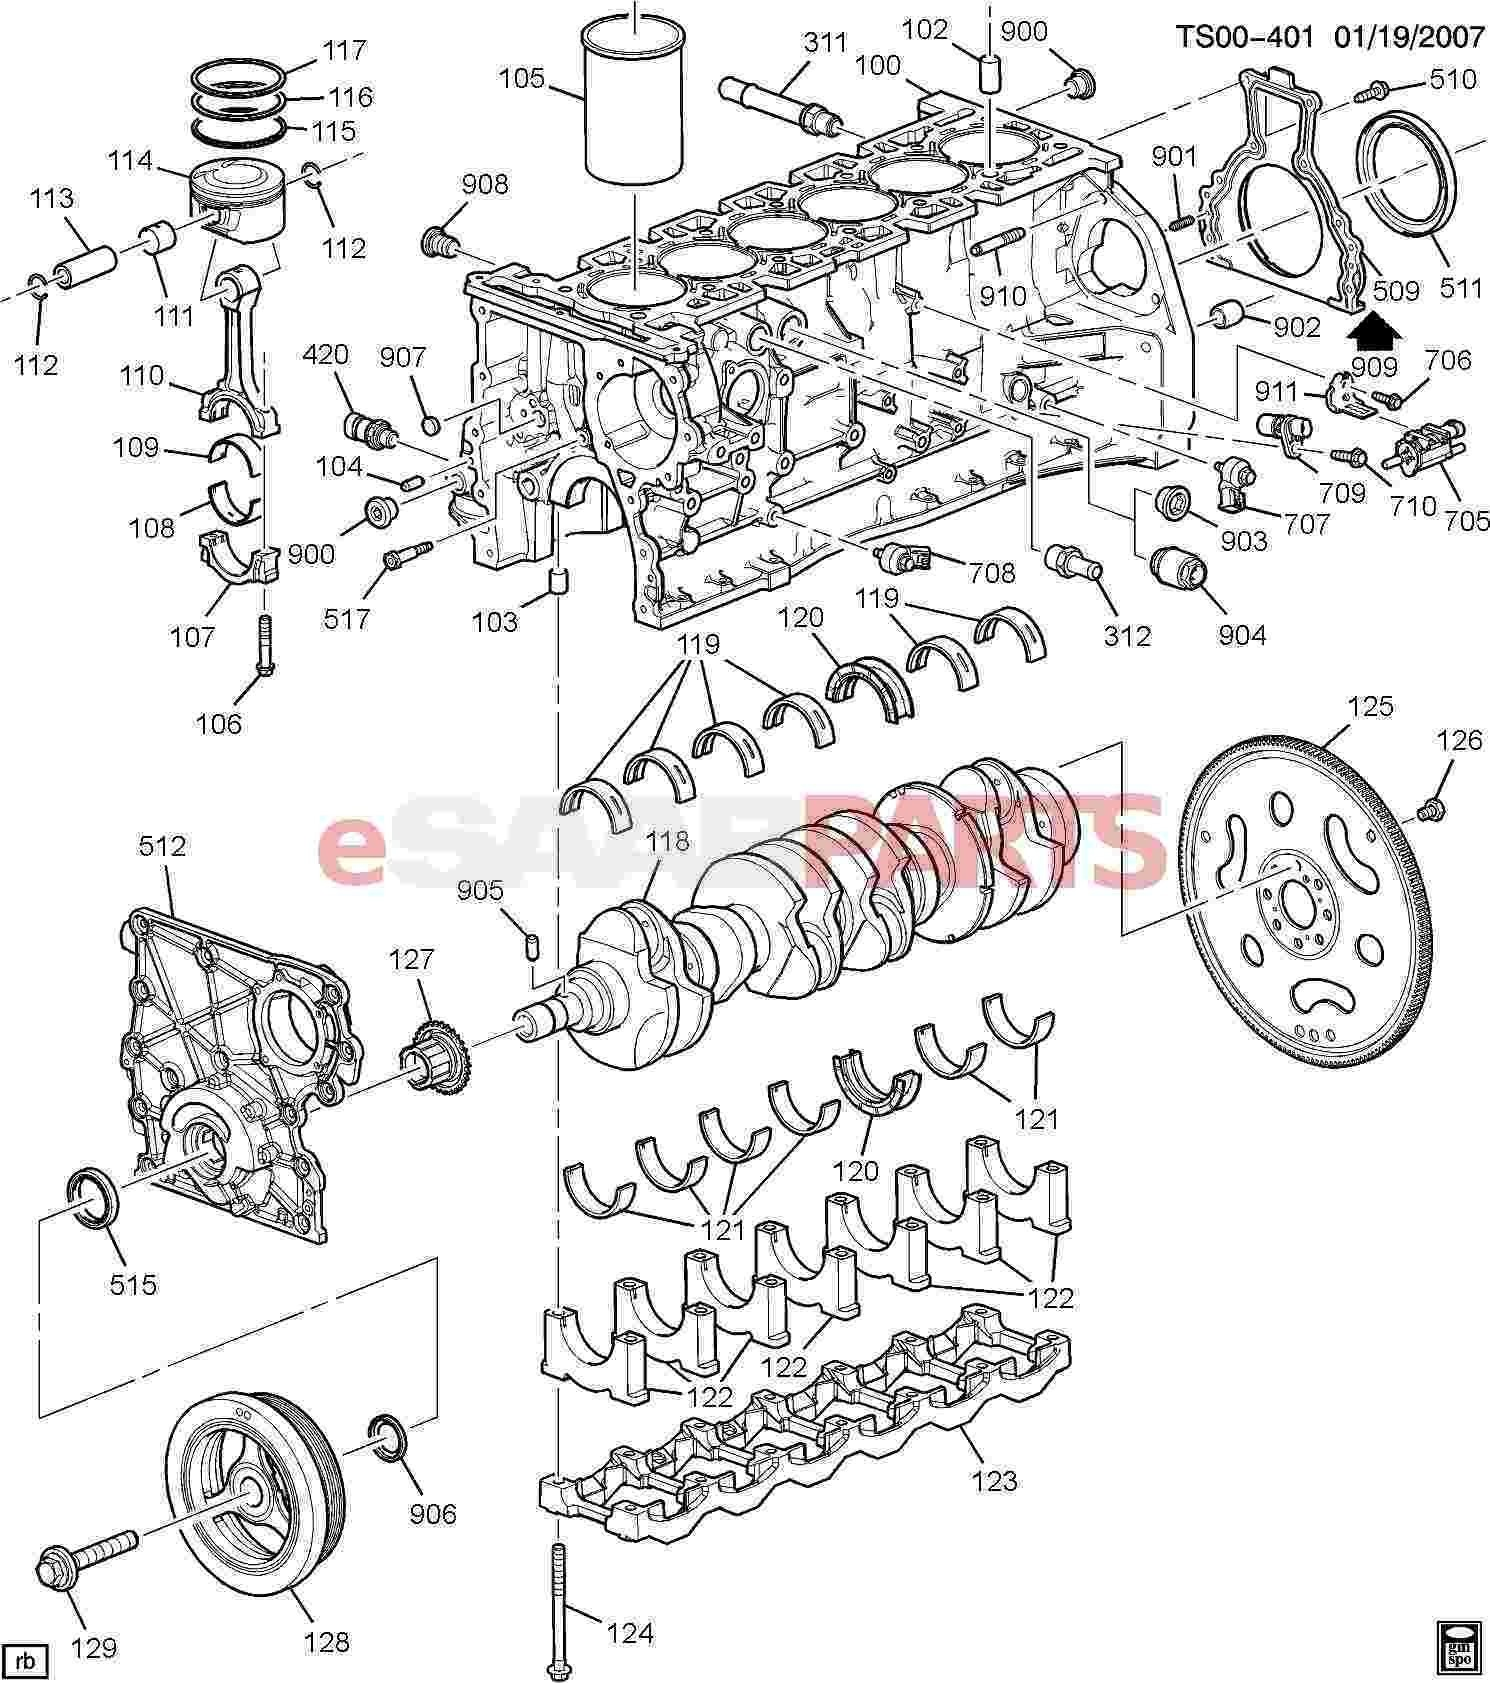 2003 Chevrolet Trailblazer Engine Diagram | Wiring Liry on